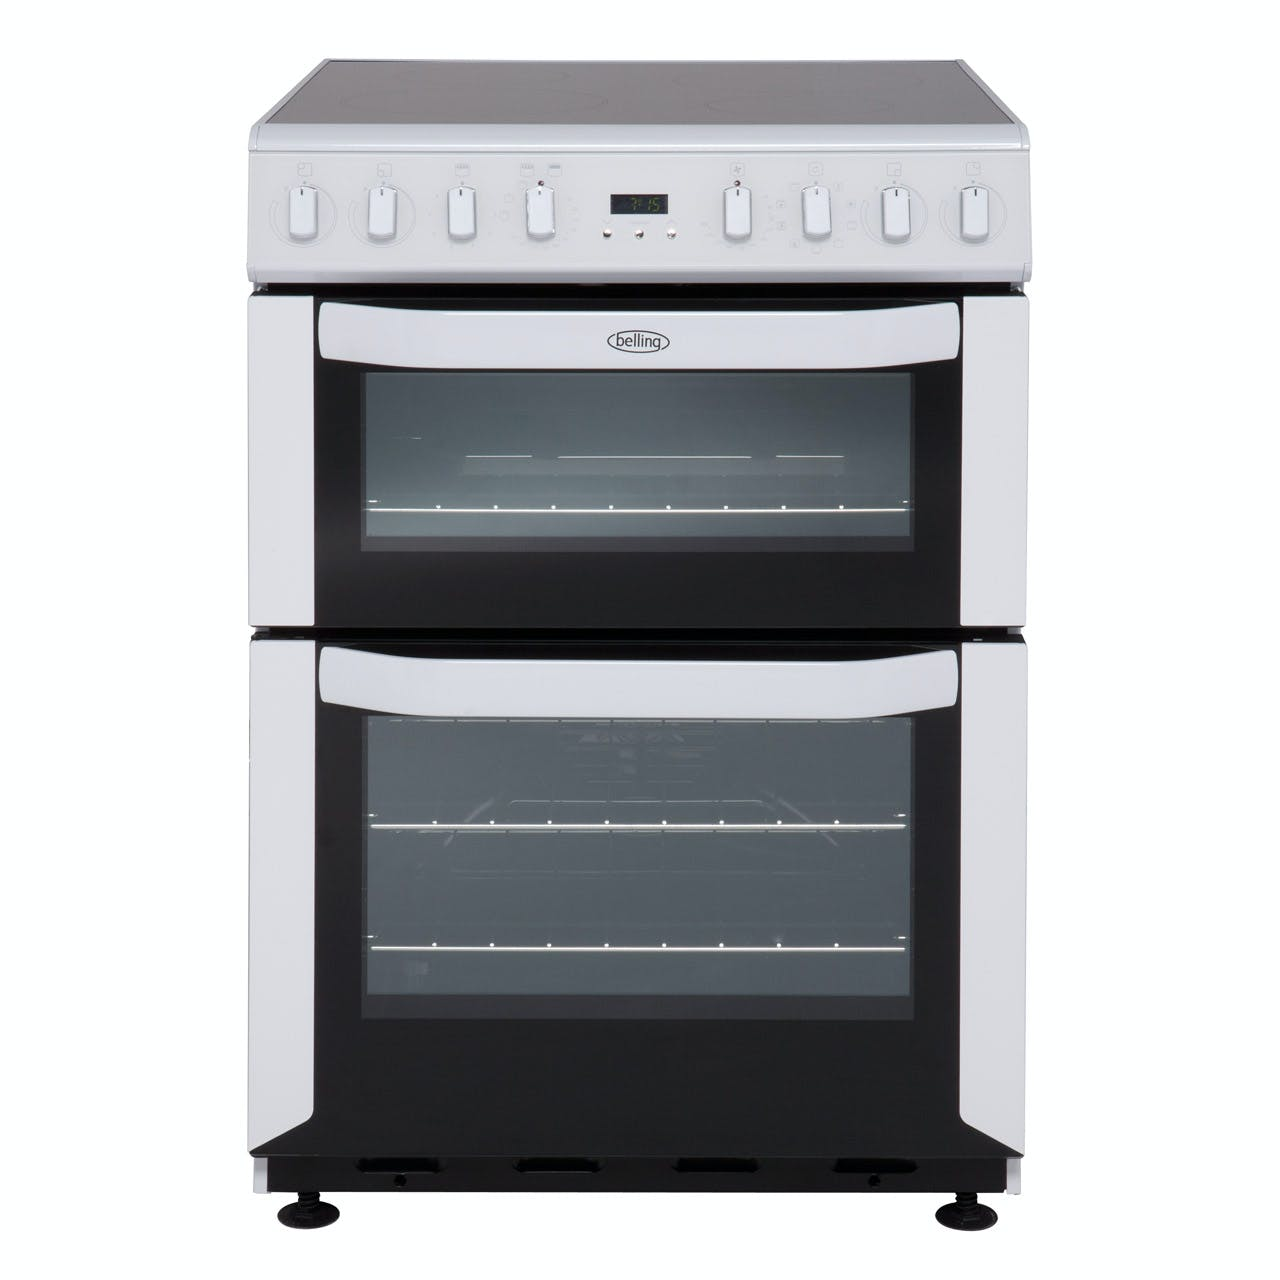 Belling 444443703 60cm Electric Cooker In White Induction Hob